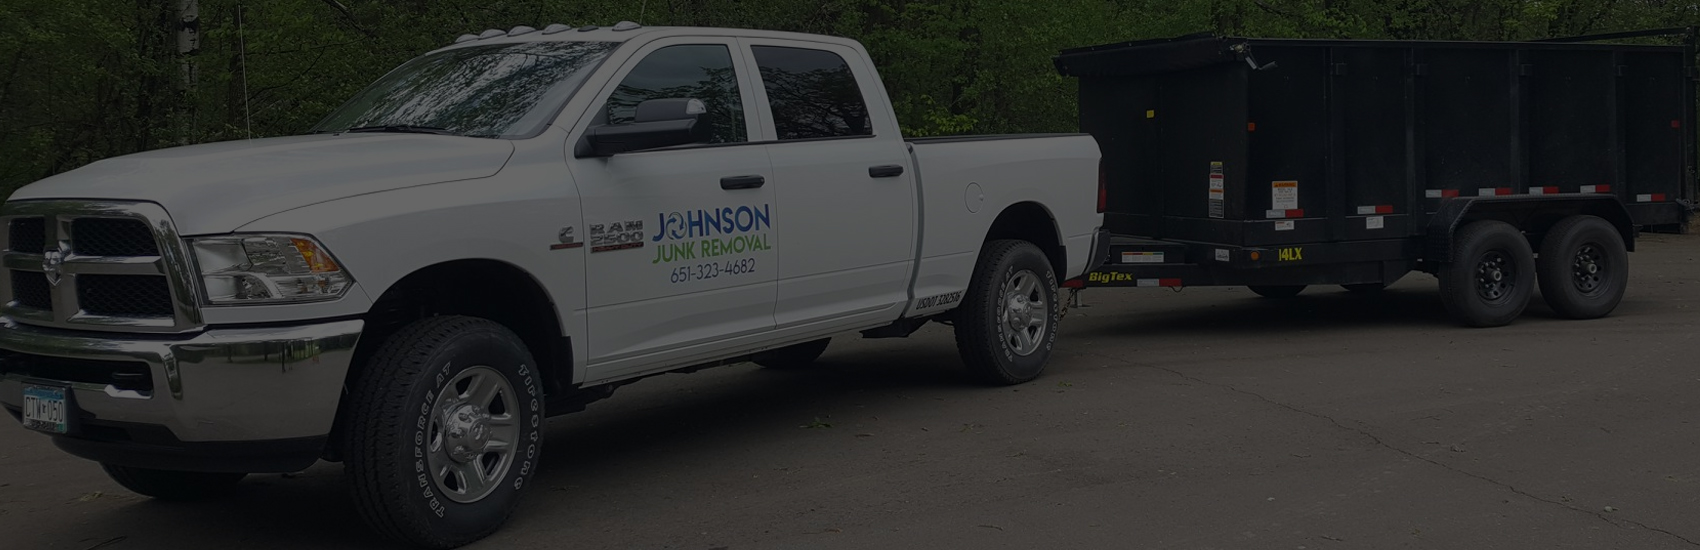 MN Junk Removal